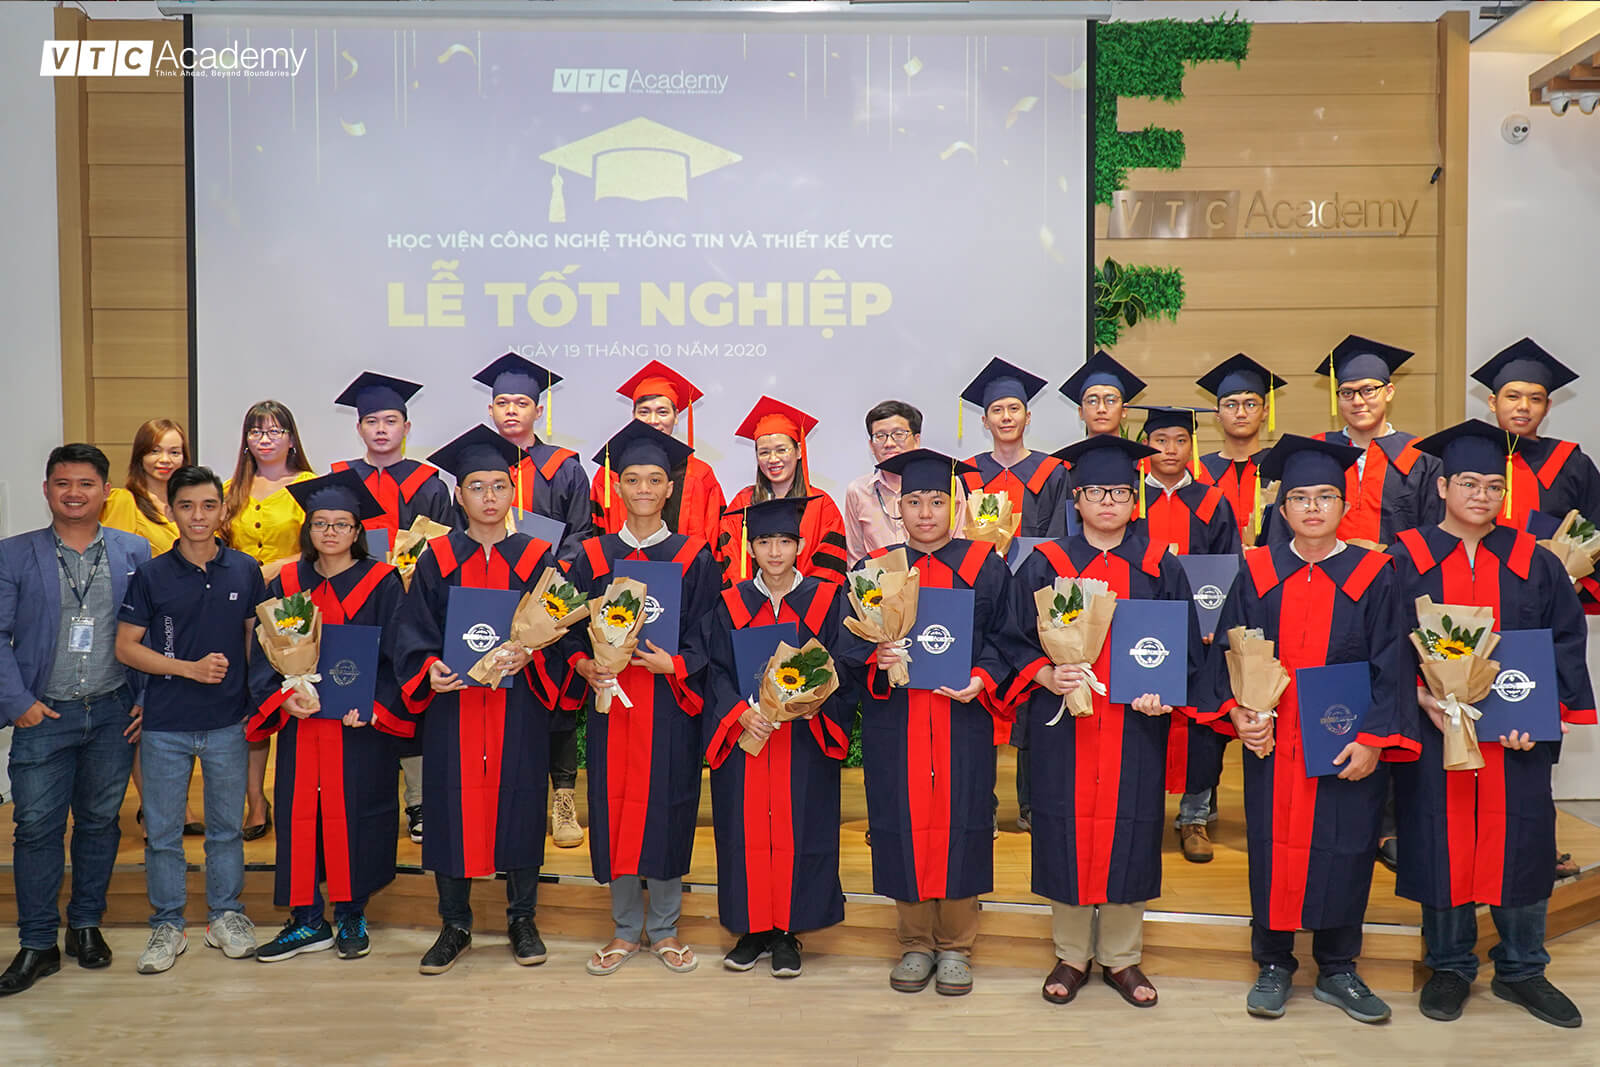 VTC Academy organizes Graduation Ceremony for students in Ho Chi Minh City